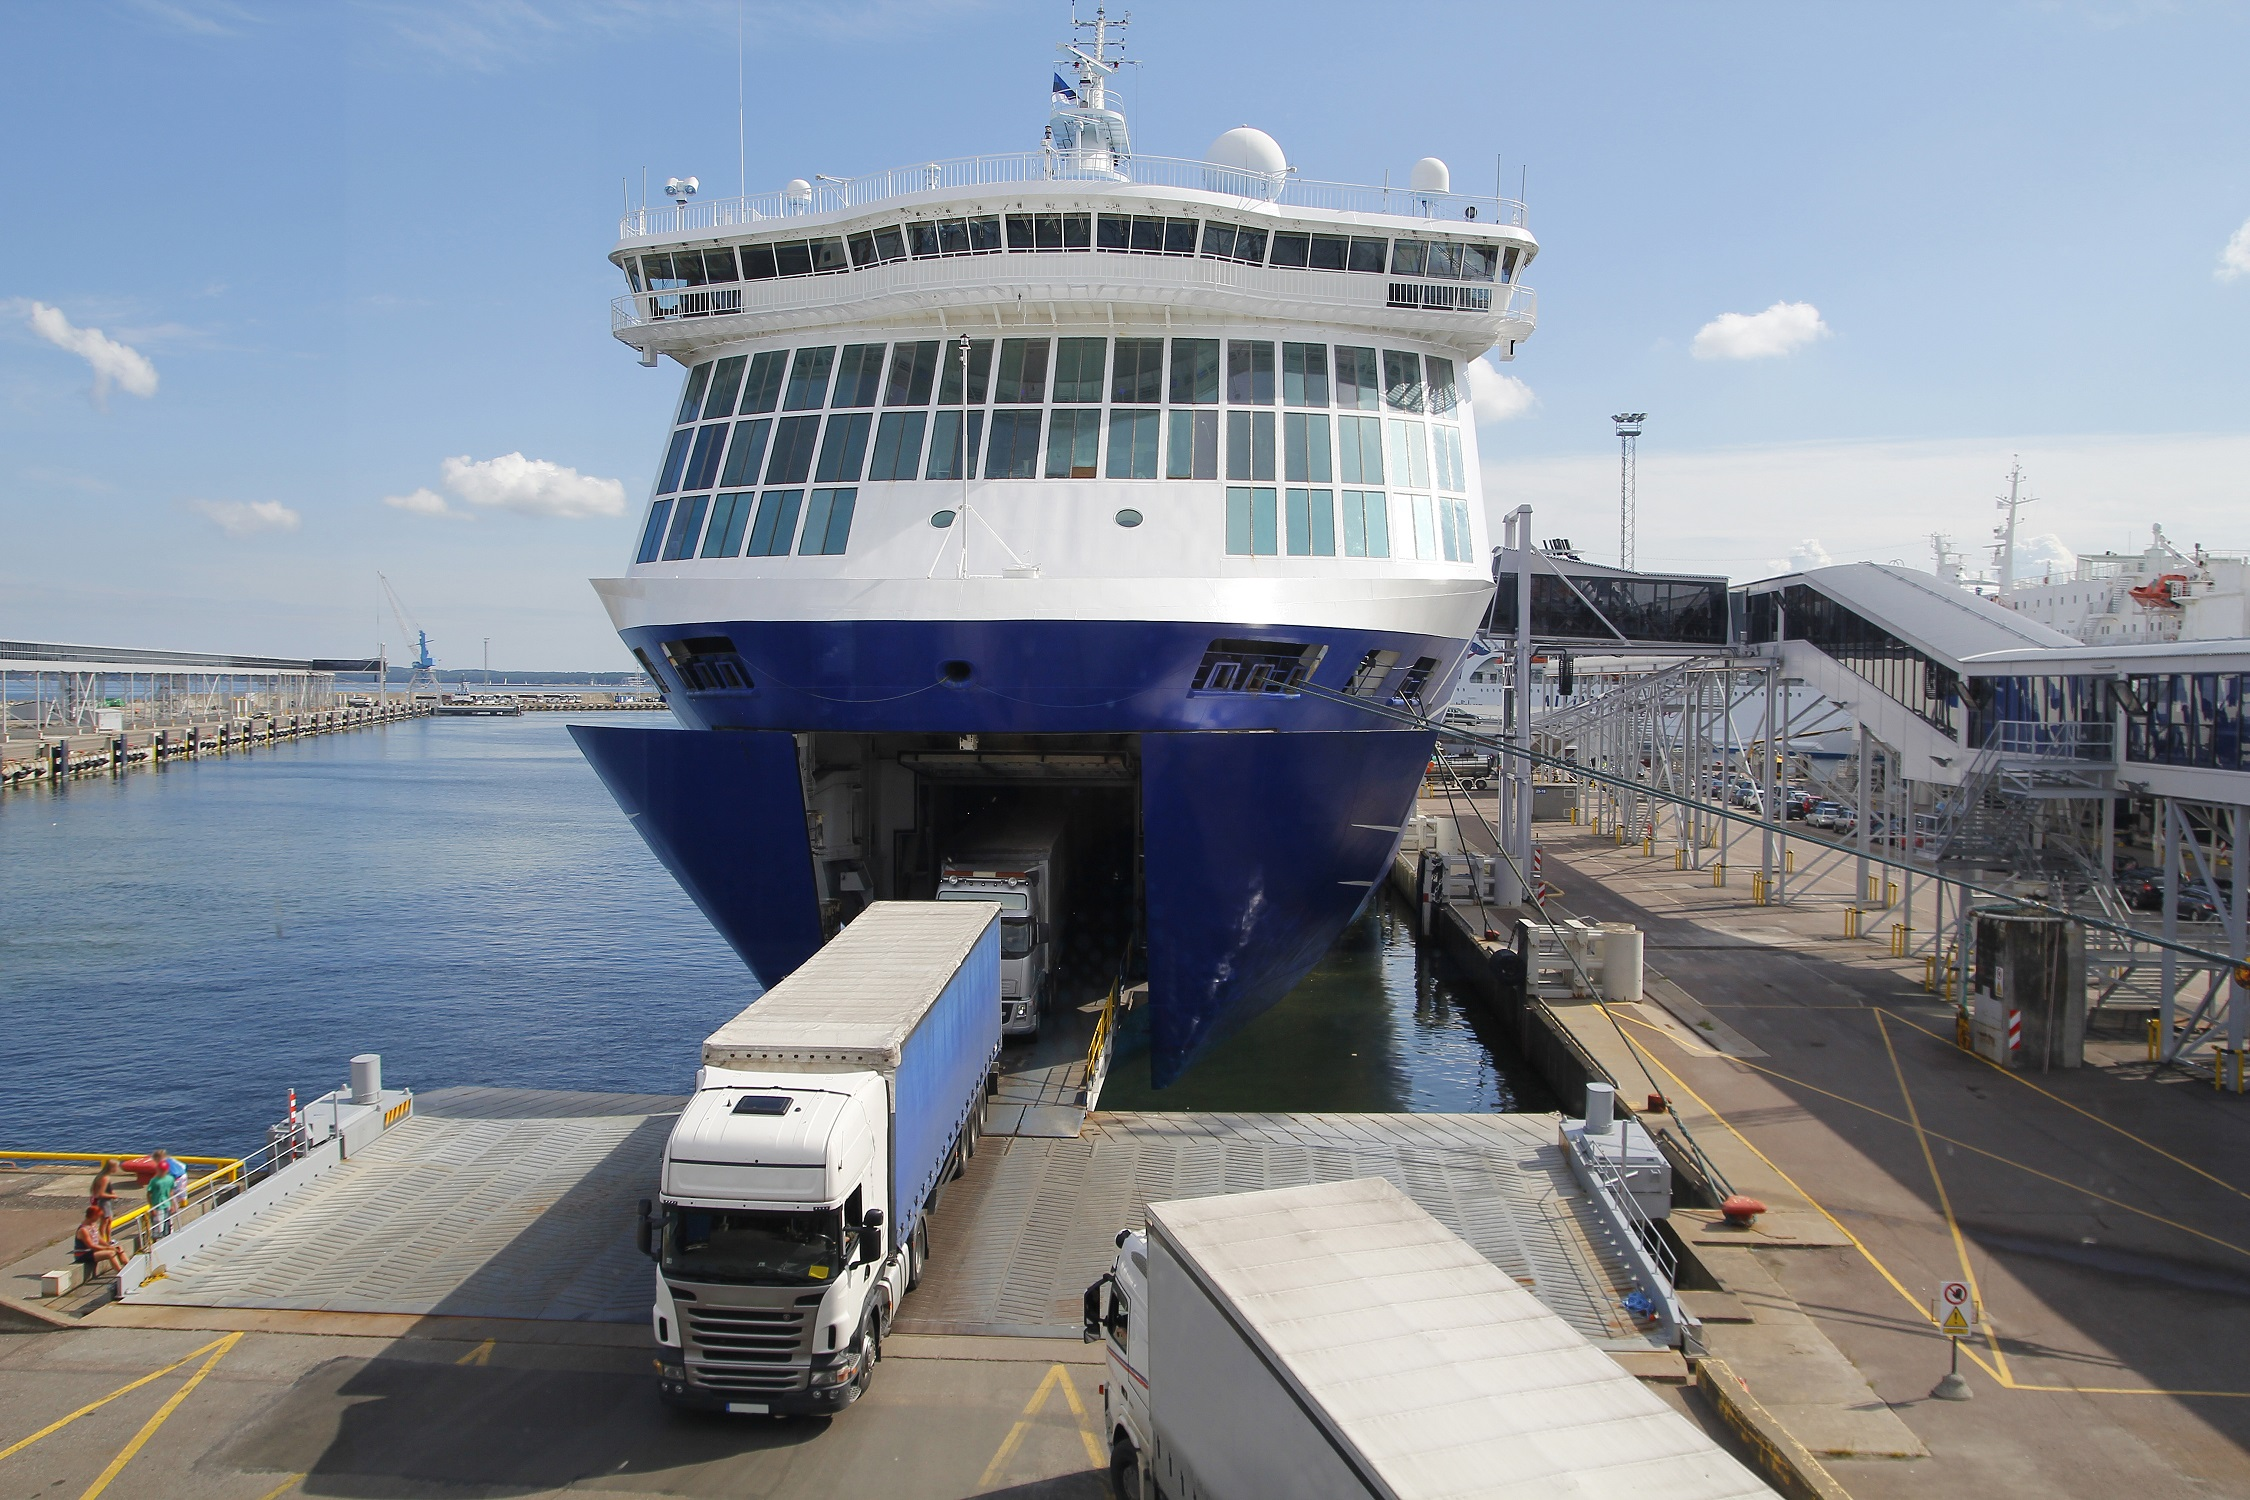 Ferry Safety – Lashing of Vehicles in Adverse Weather Conditions